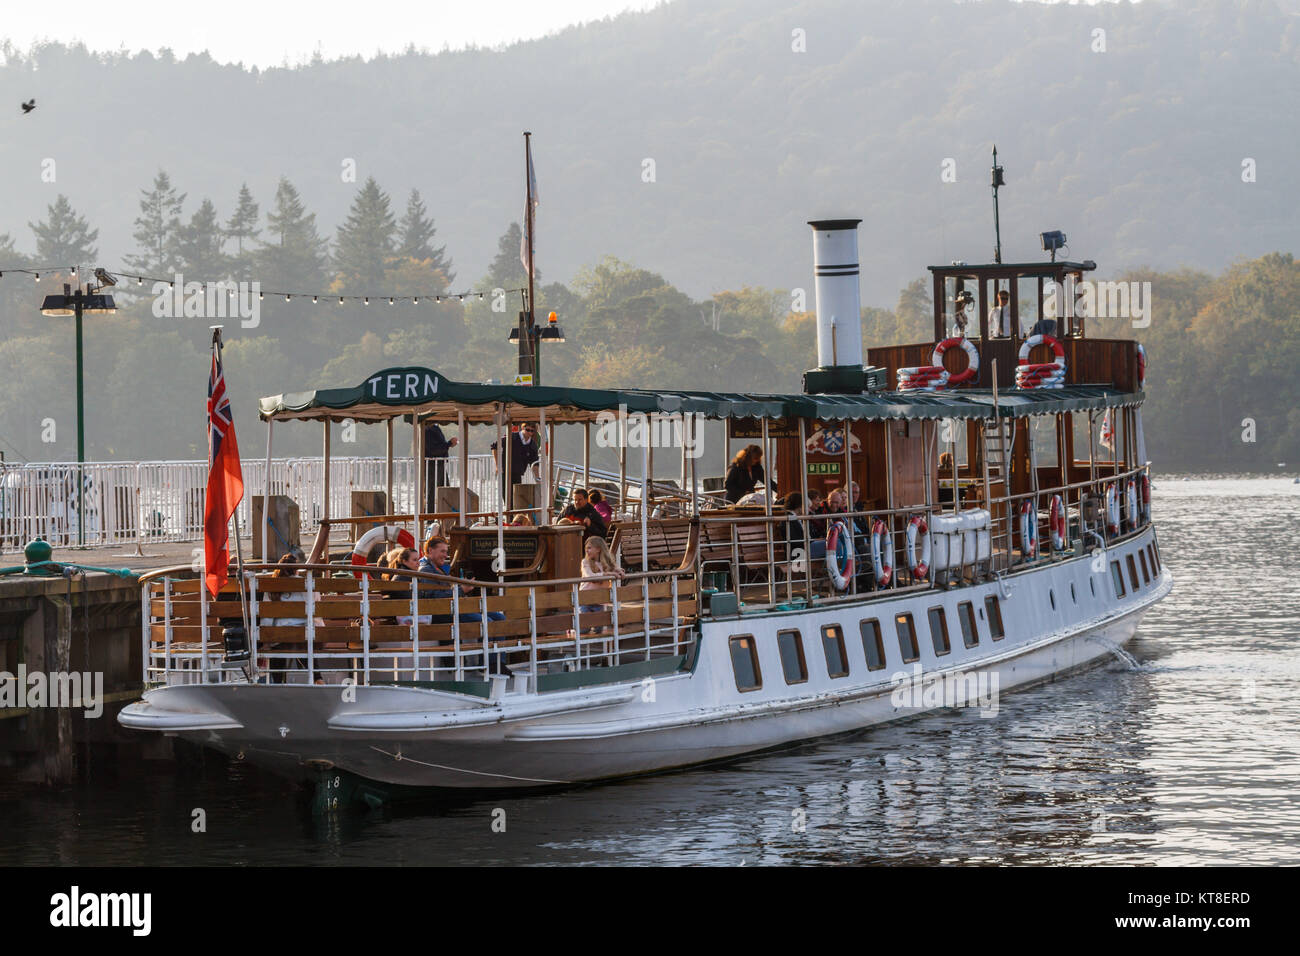 Former Steam Powered Cruise Ship 'Tern' with day-trippers at Ambleside on Lake Windermere in The Lake District, - Stock Image